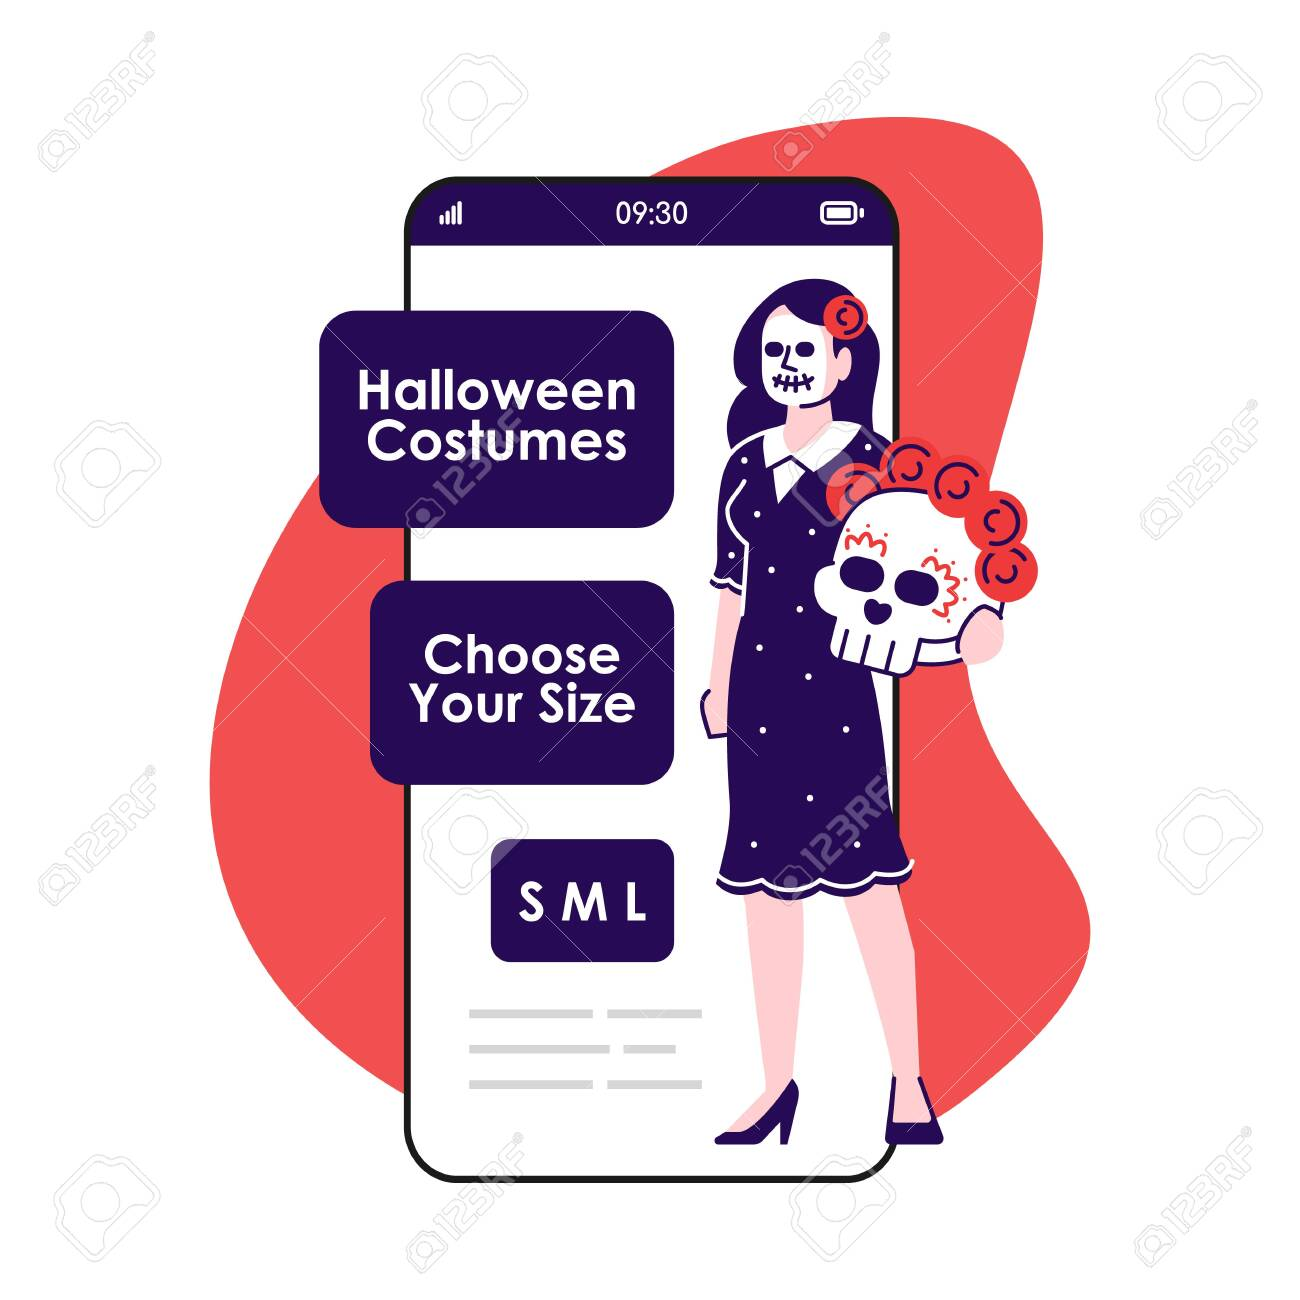 Halloween Costumes Smartphone App Screen Mobile Phone Displays Royalty Free Cliparts Vectors And Stock Illustration Image 135689529